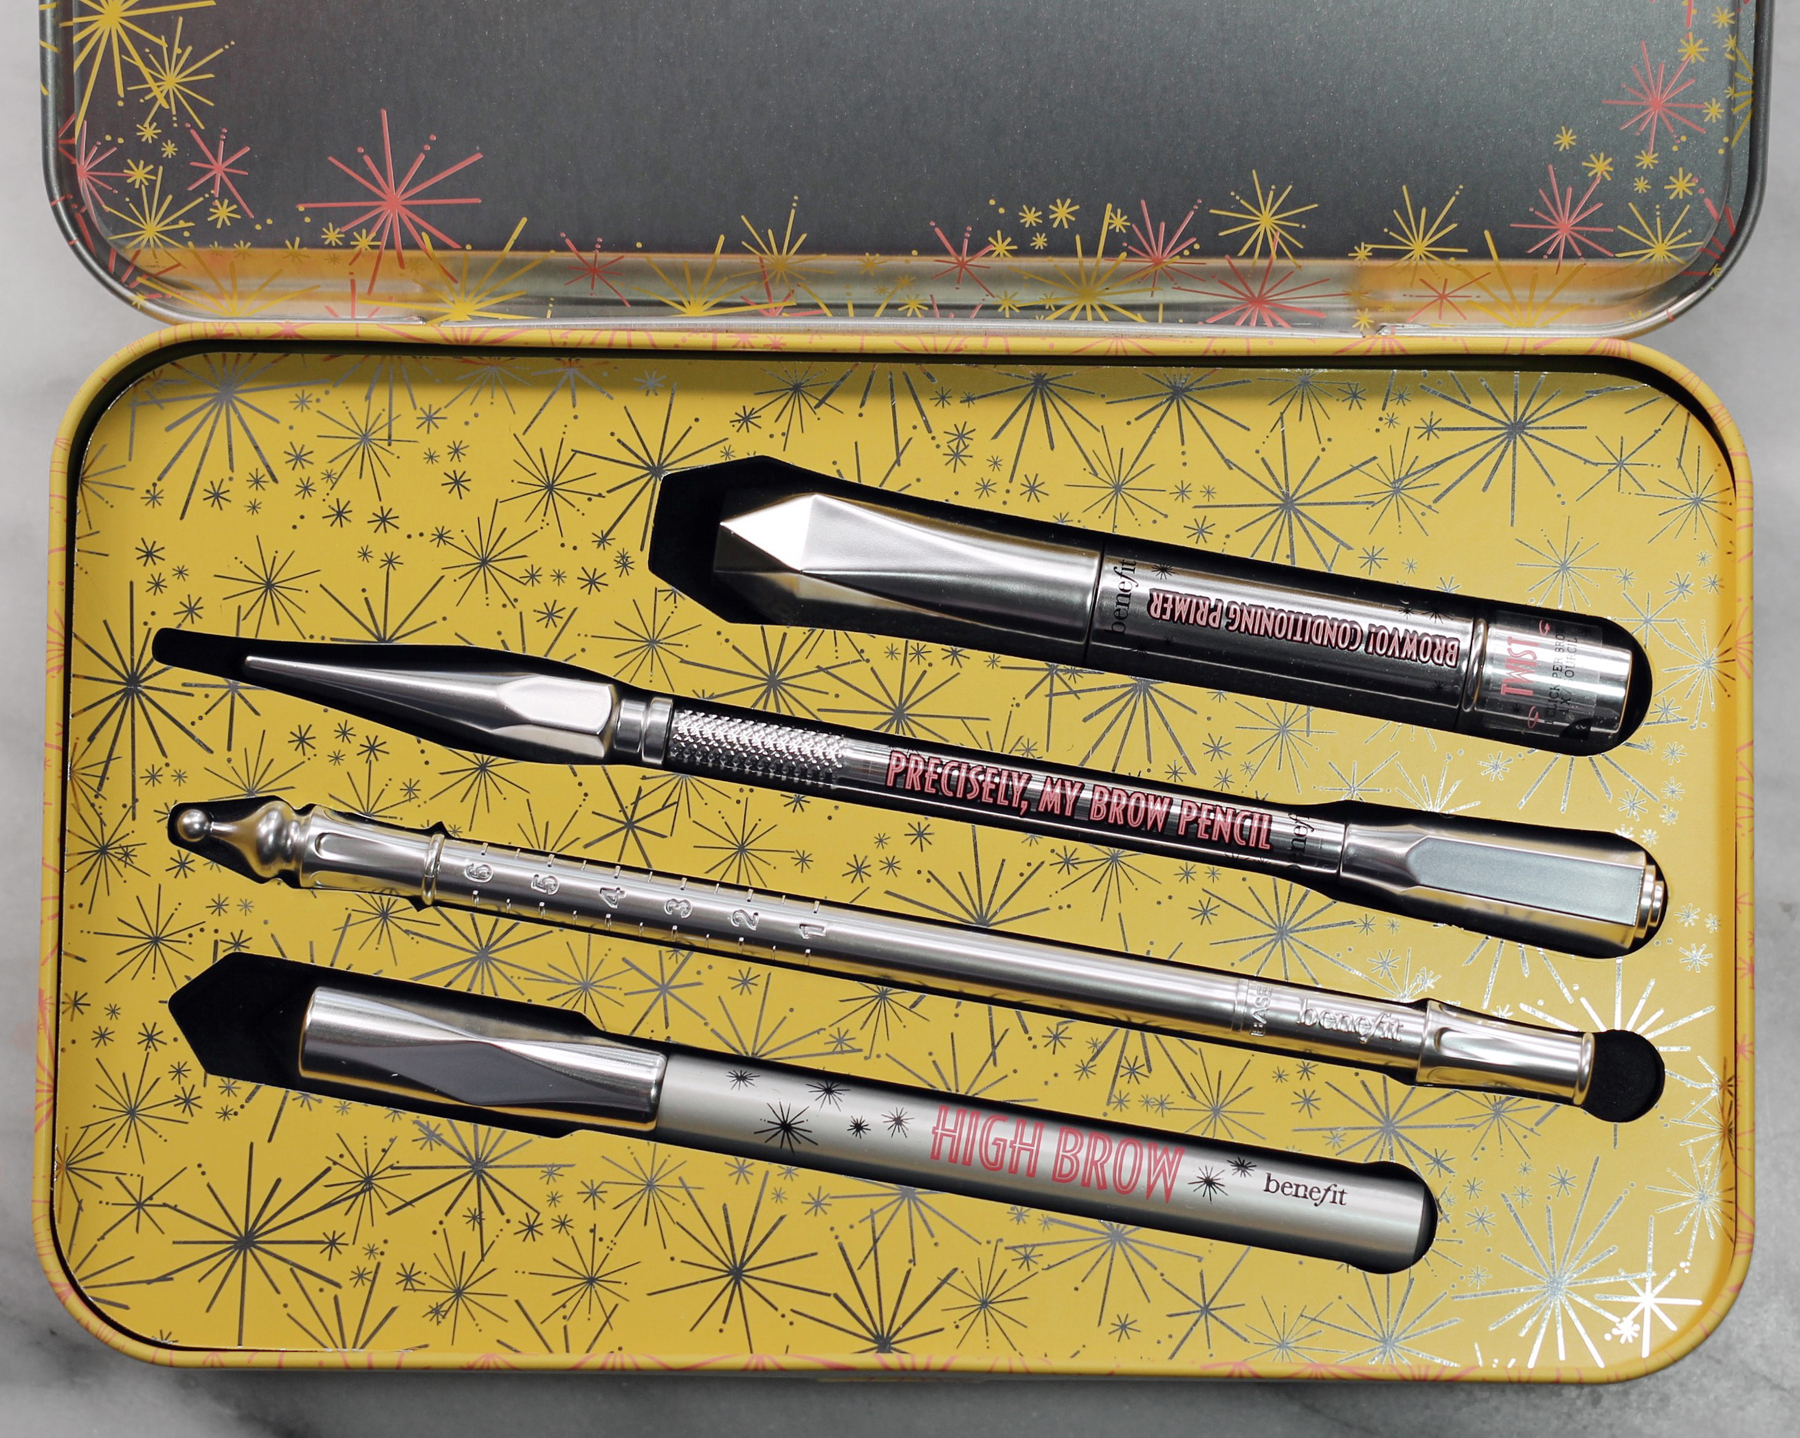 BENEFIT'S NEWEST SETS ARE THE PERFECT HOLIDAY GIFT - woahstyle.com_2014.JPG